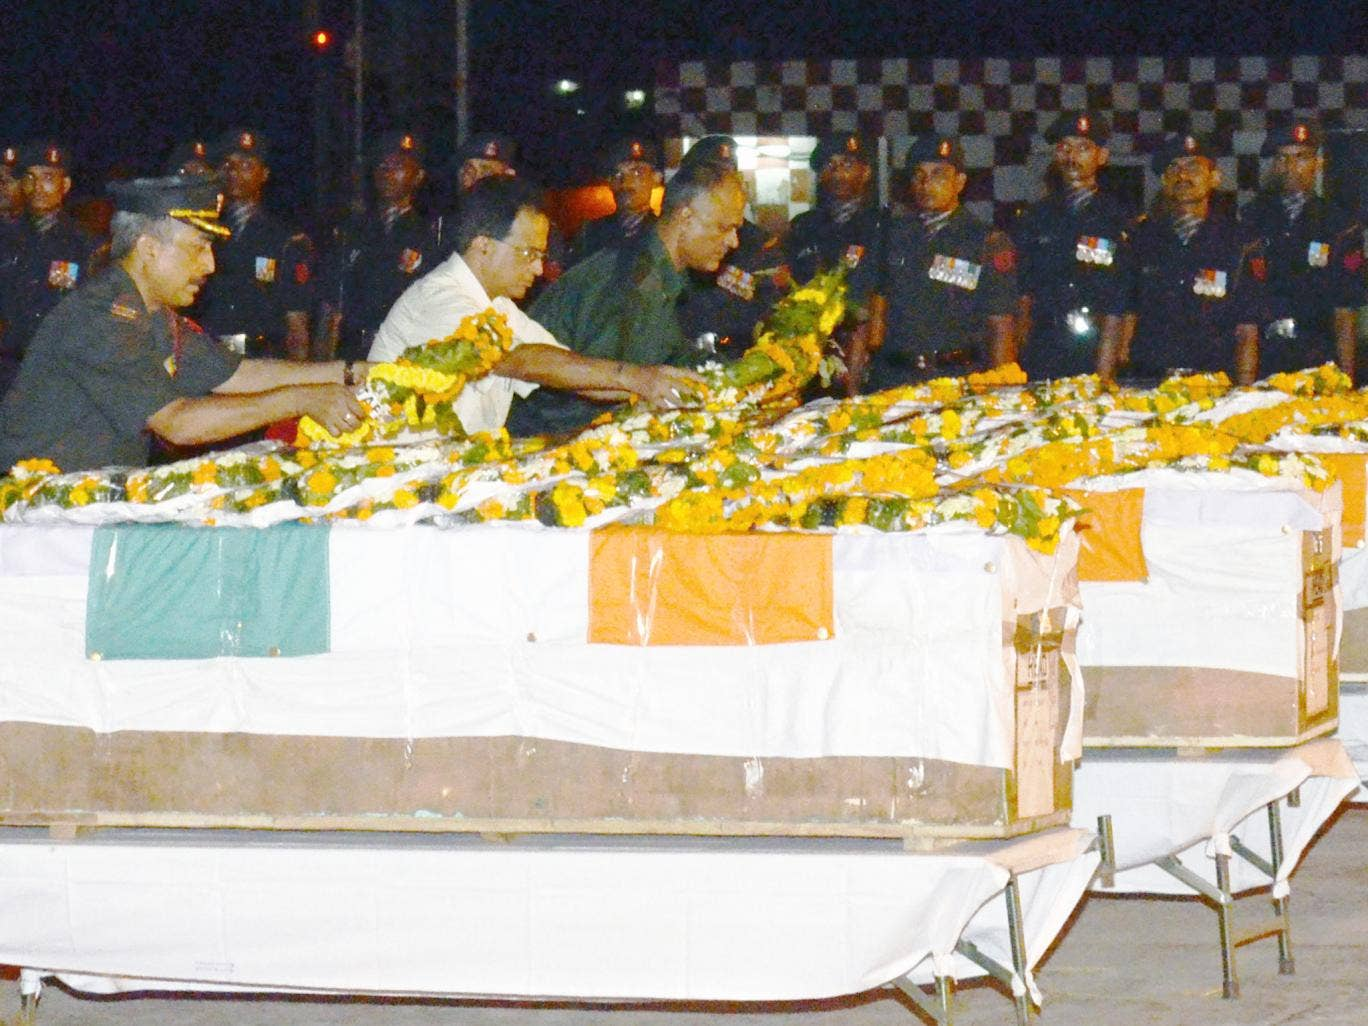 Indian Army officers lay wreaths and pay their respects over the caskets of five soldiers killed in during a cross-border attack in Kashmir, following the arrival of their remains at the Patna Airport